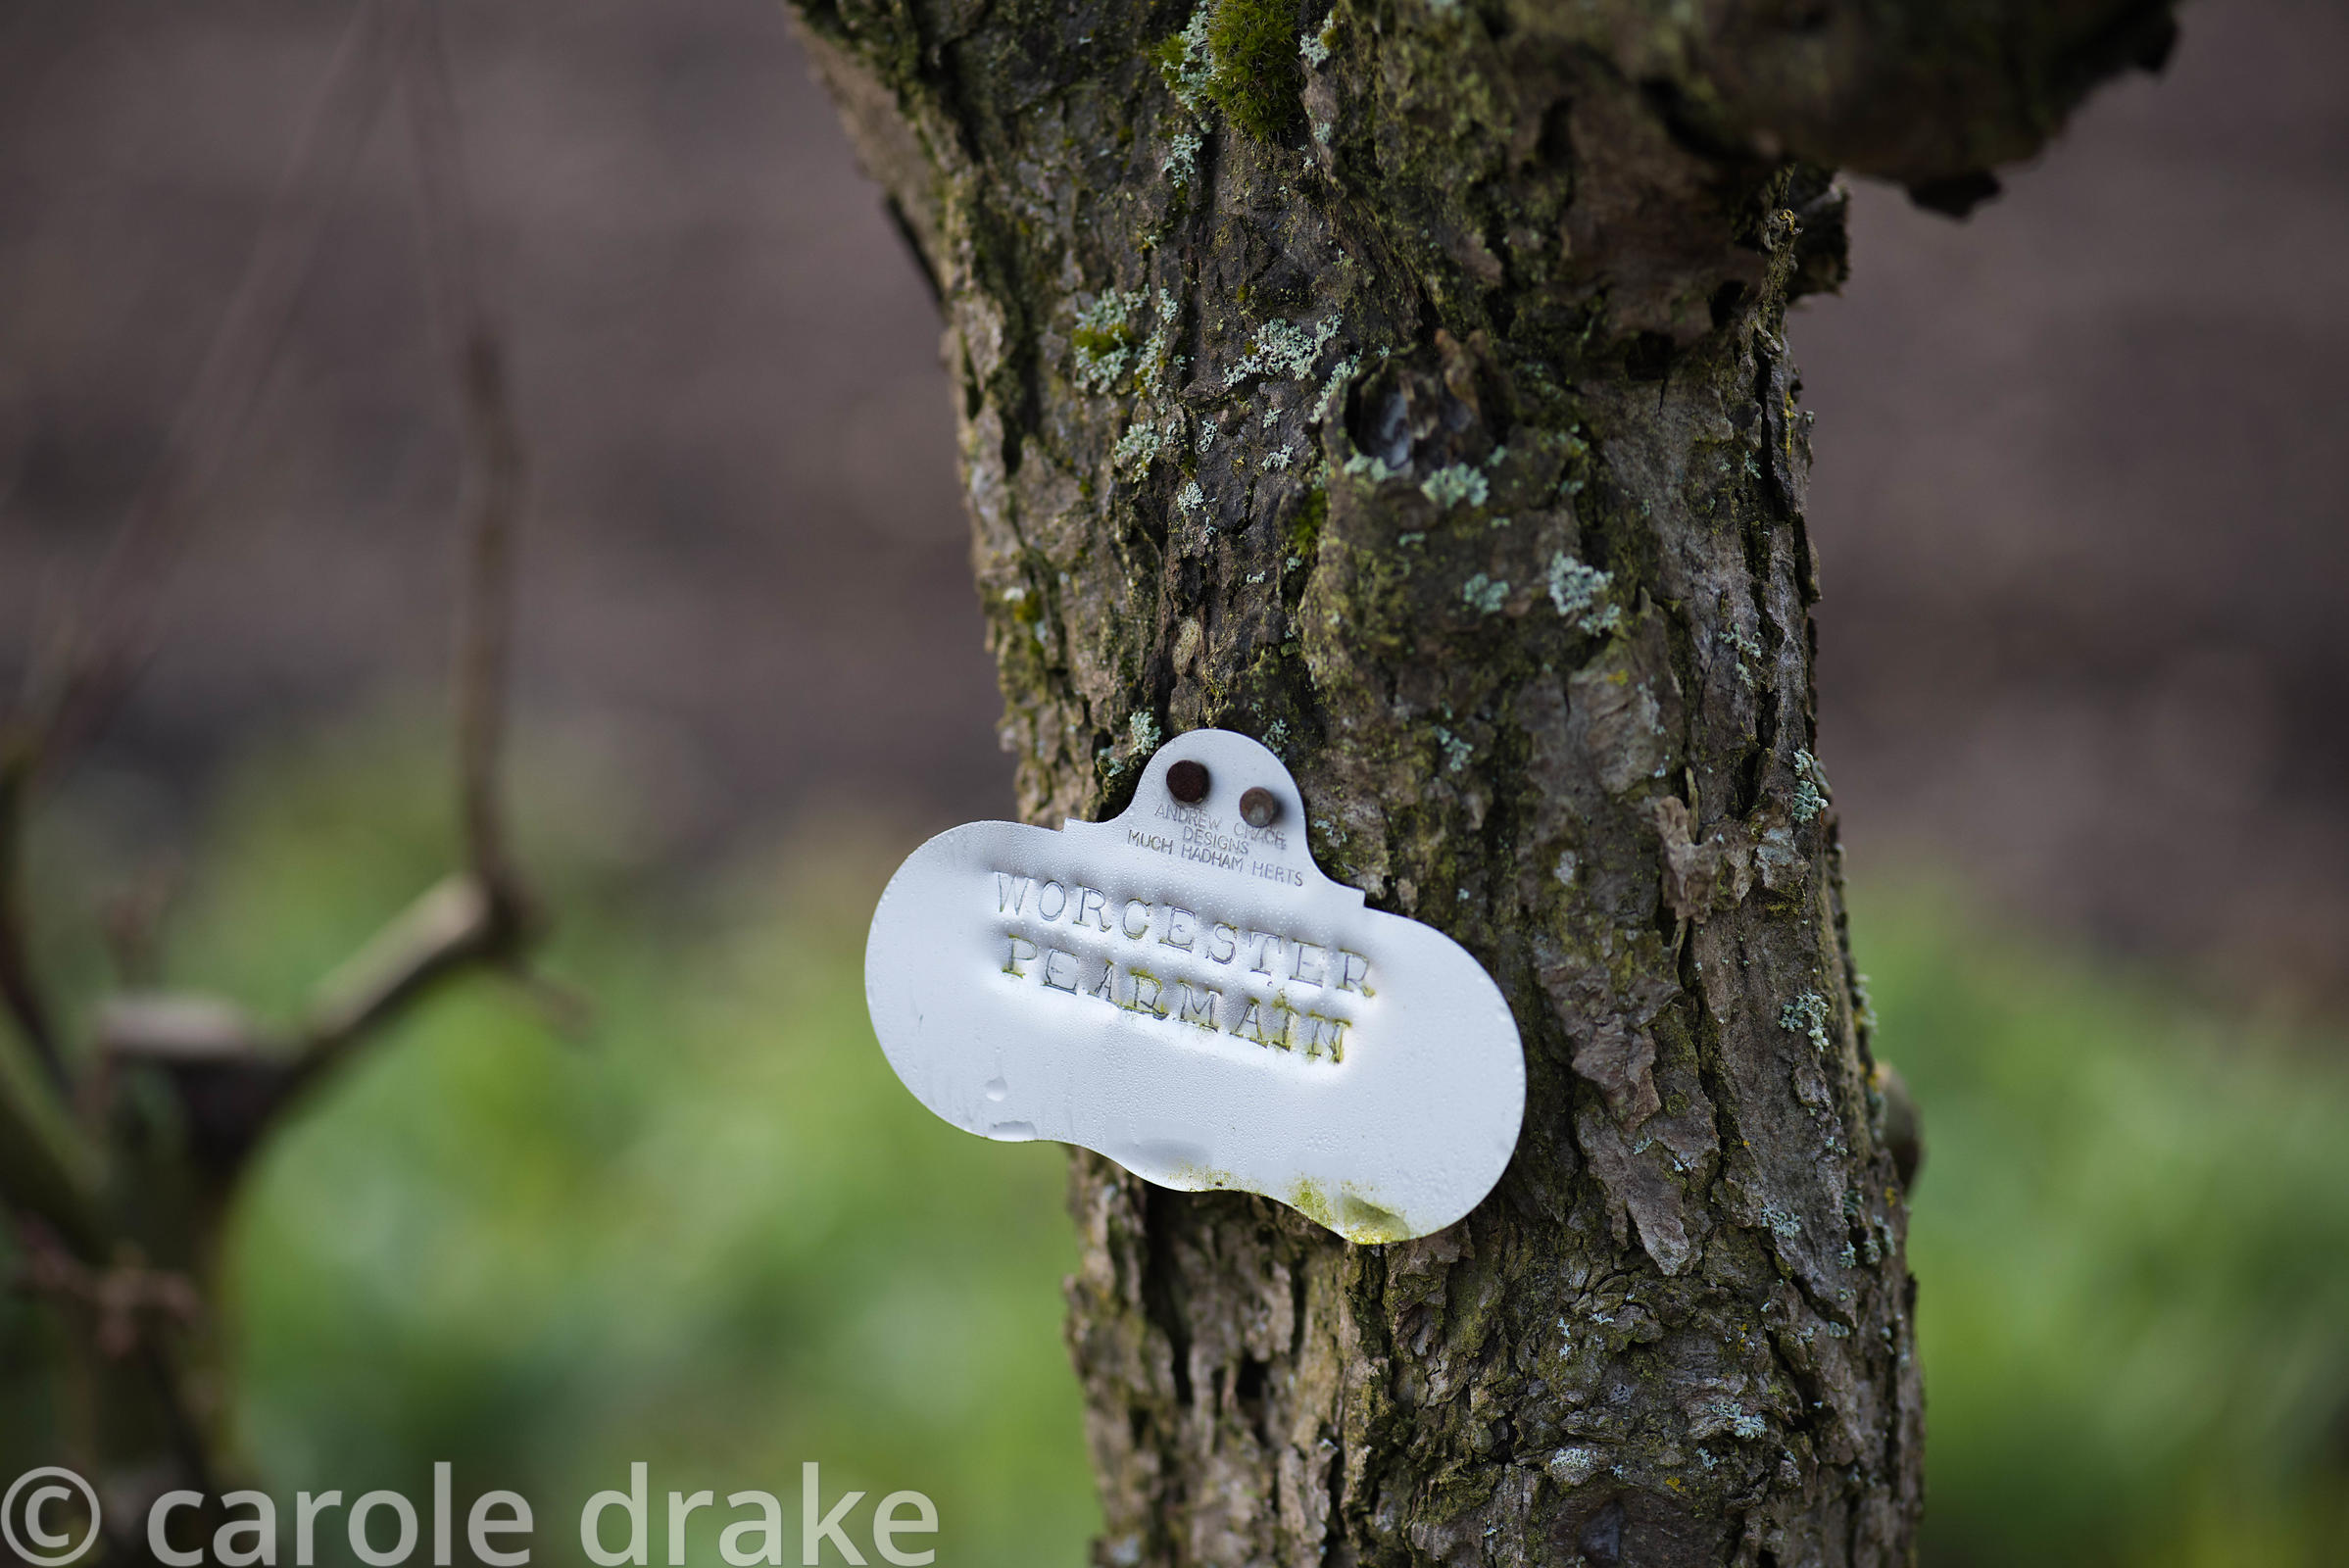 Metal labels on trained fruit trees in the Kitchen Garden at Doddington Hall, Lincolnshire in March